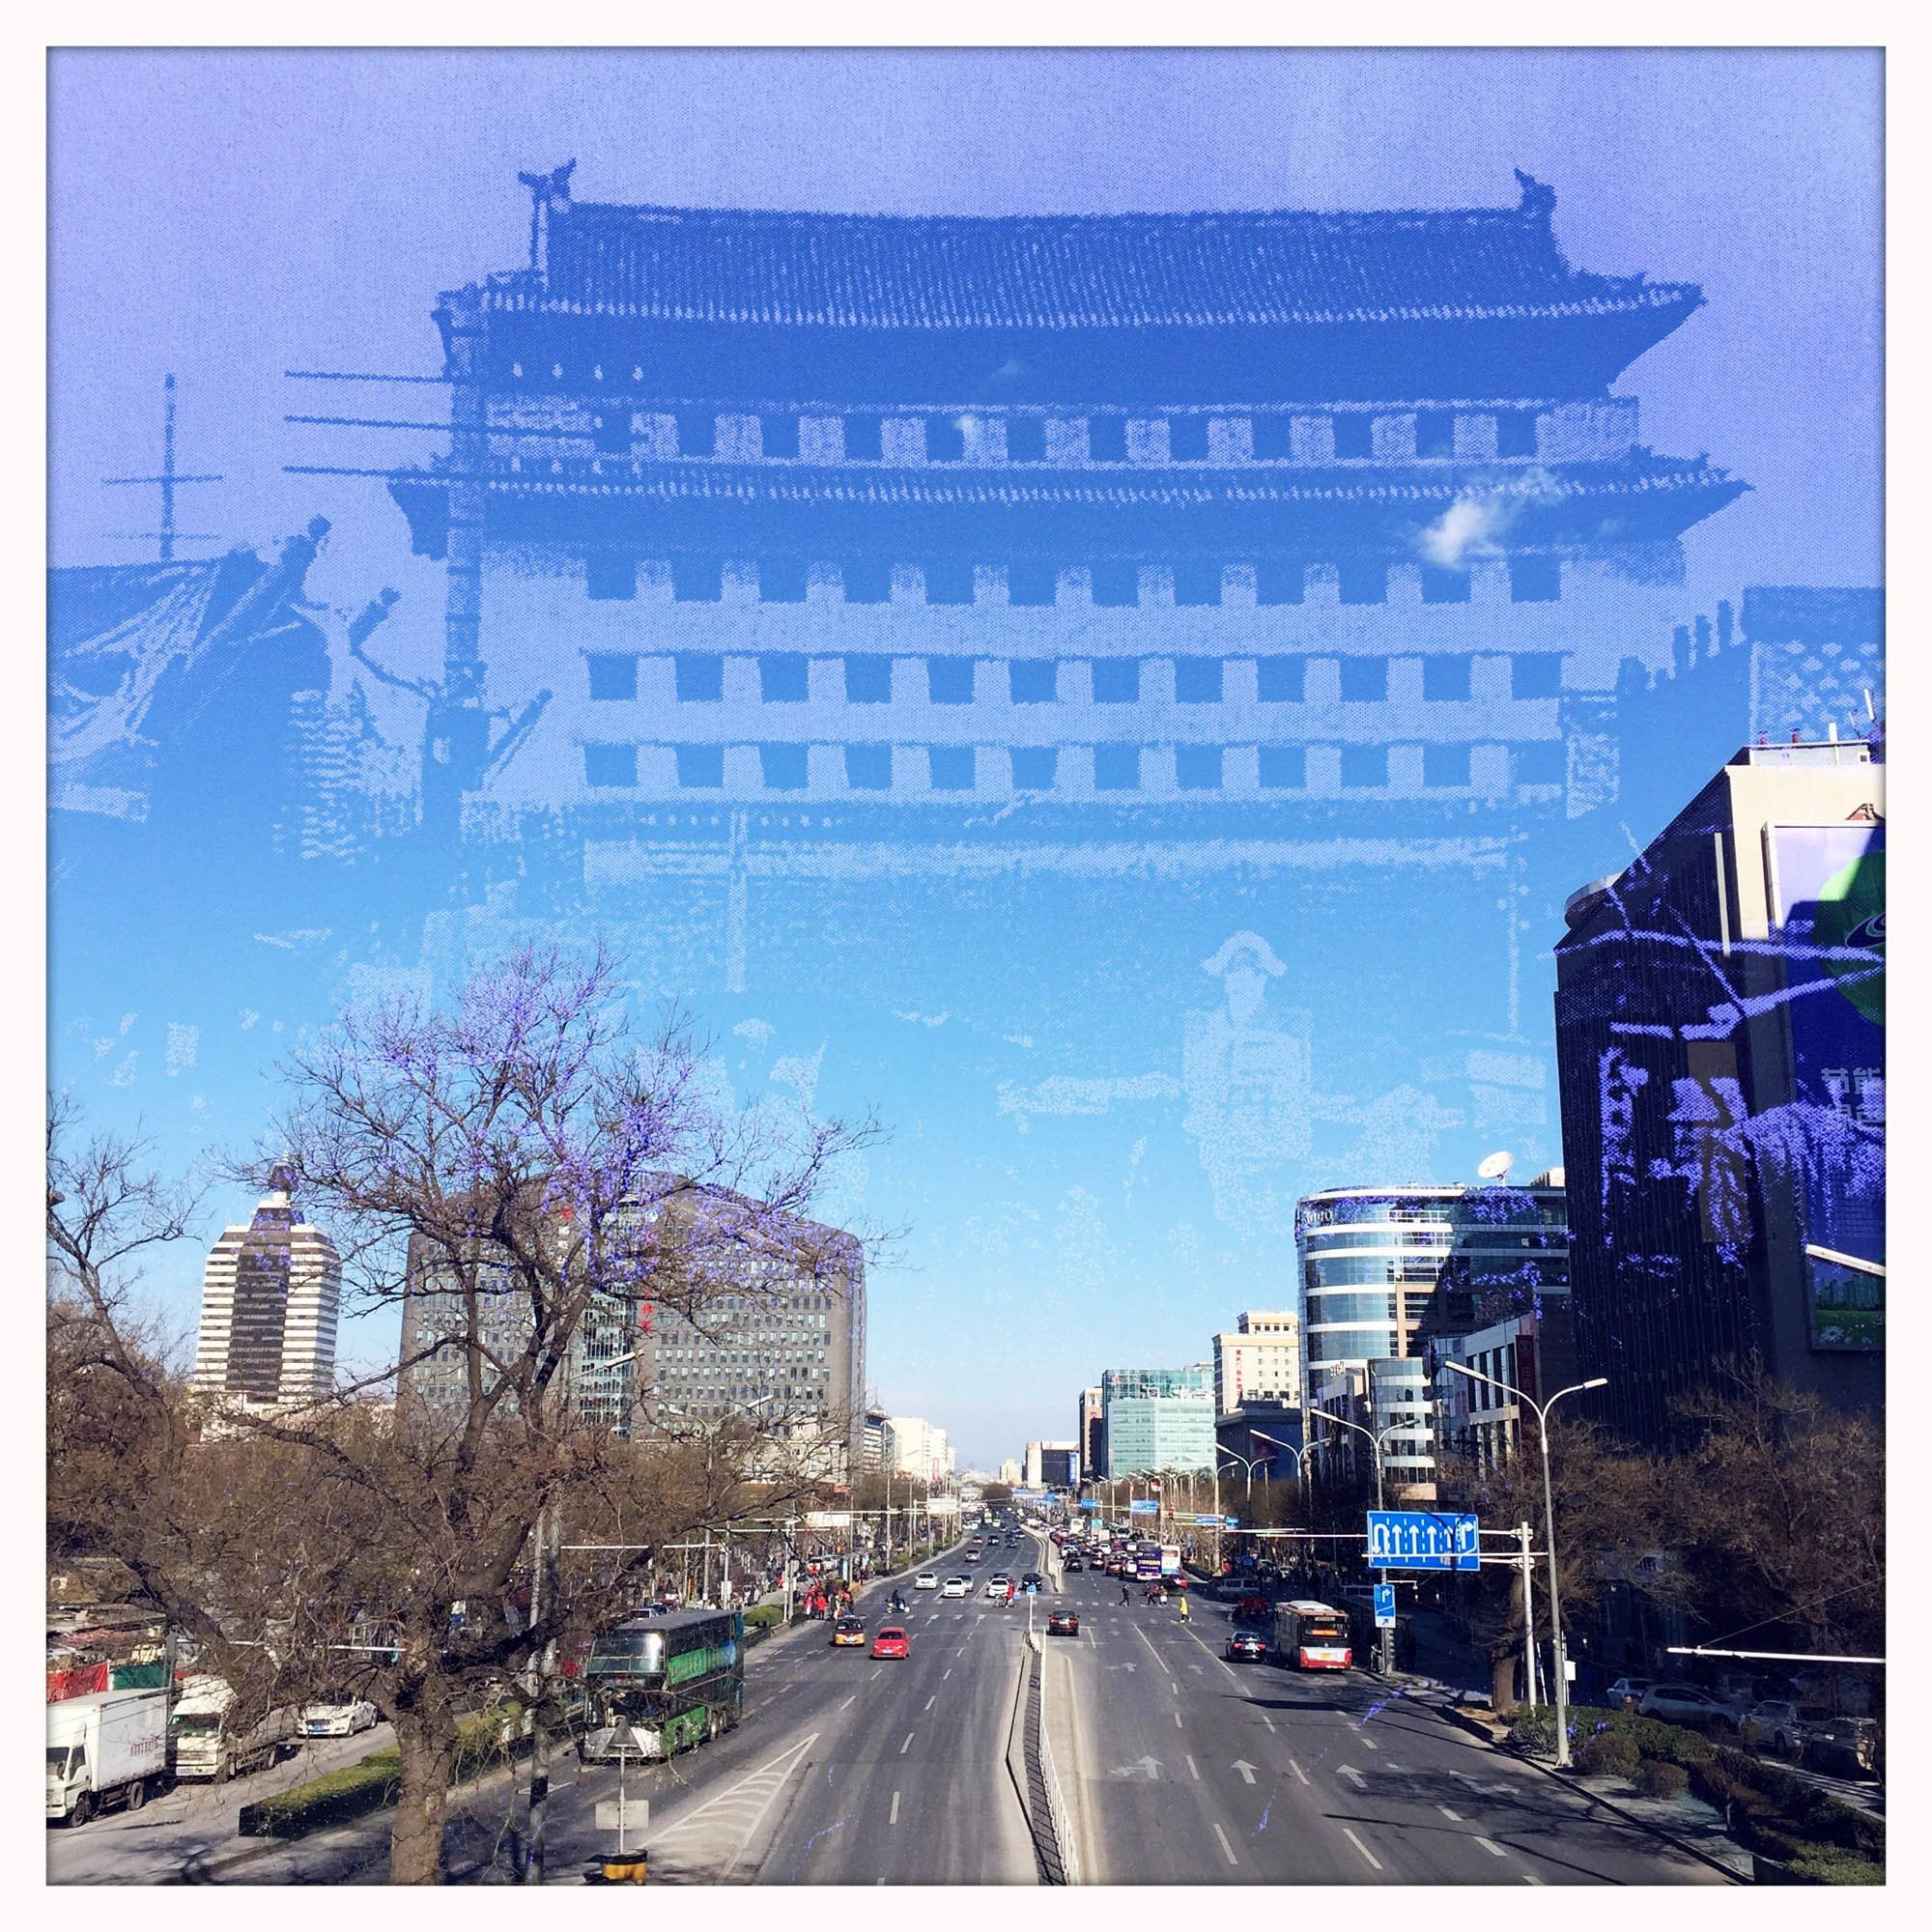 An image of Xuanwumen Gate Tower, which was demolished in 1965, is superimposed on one of Xuanwumen area,now home to ma